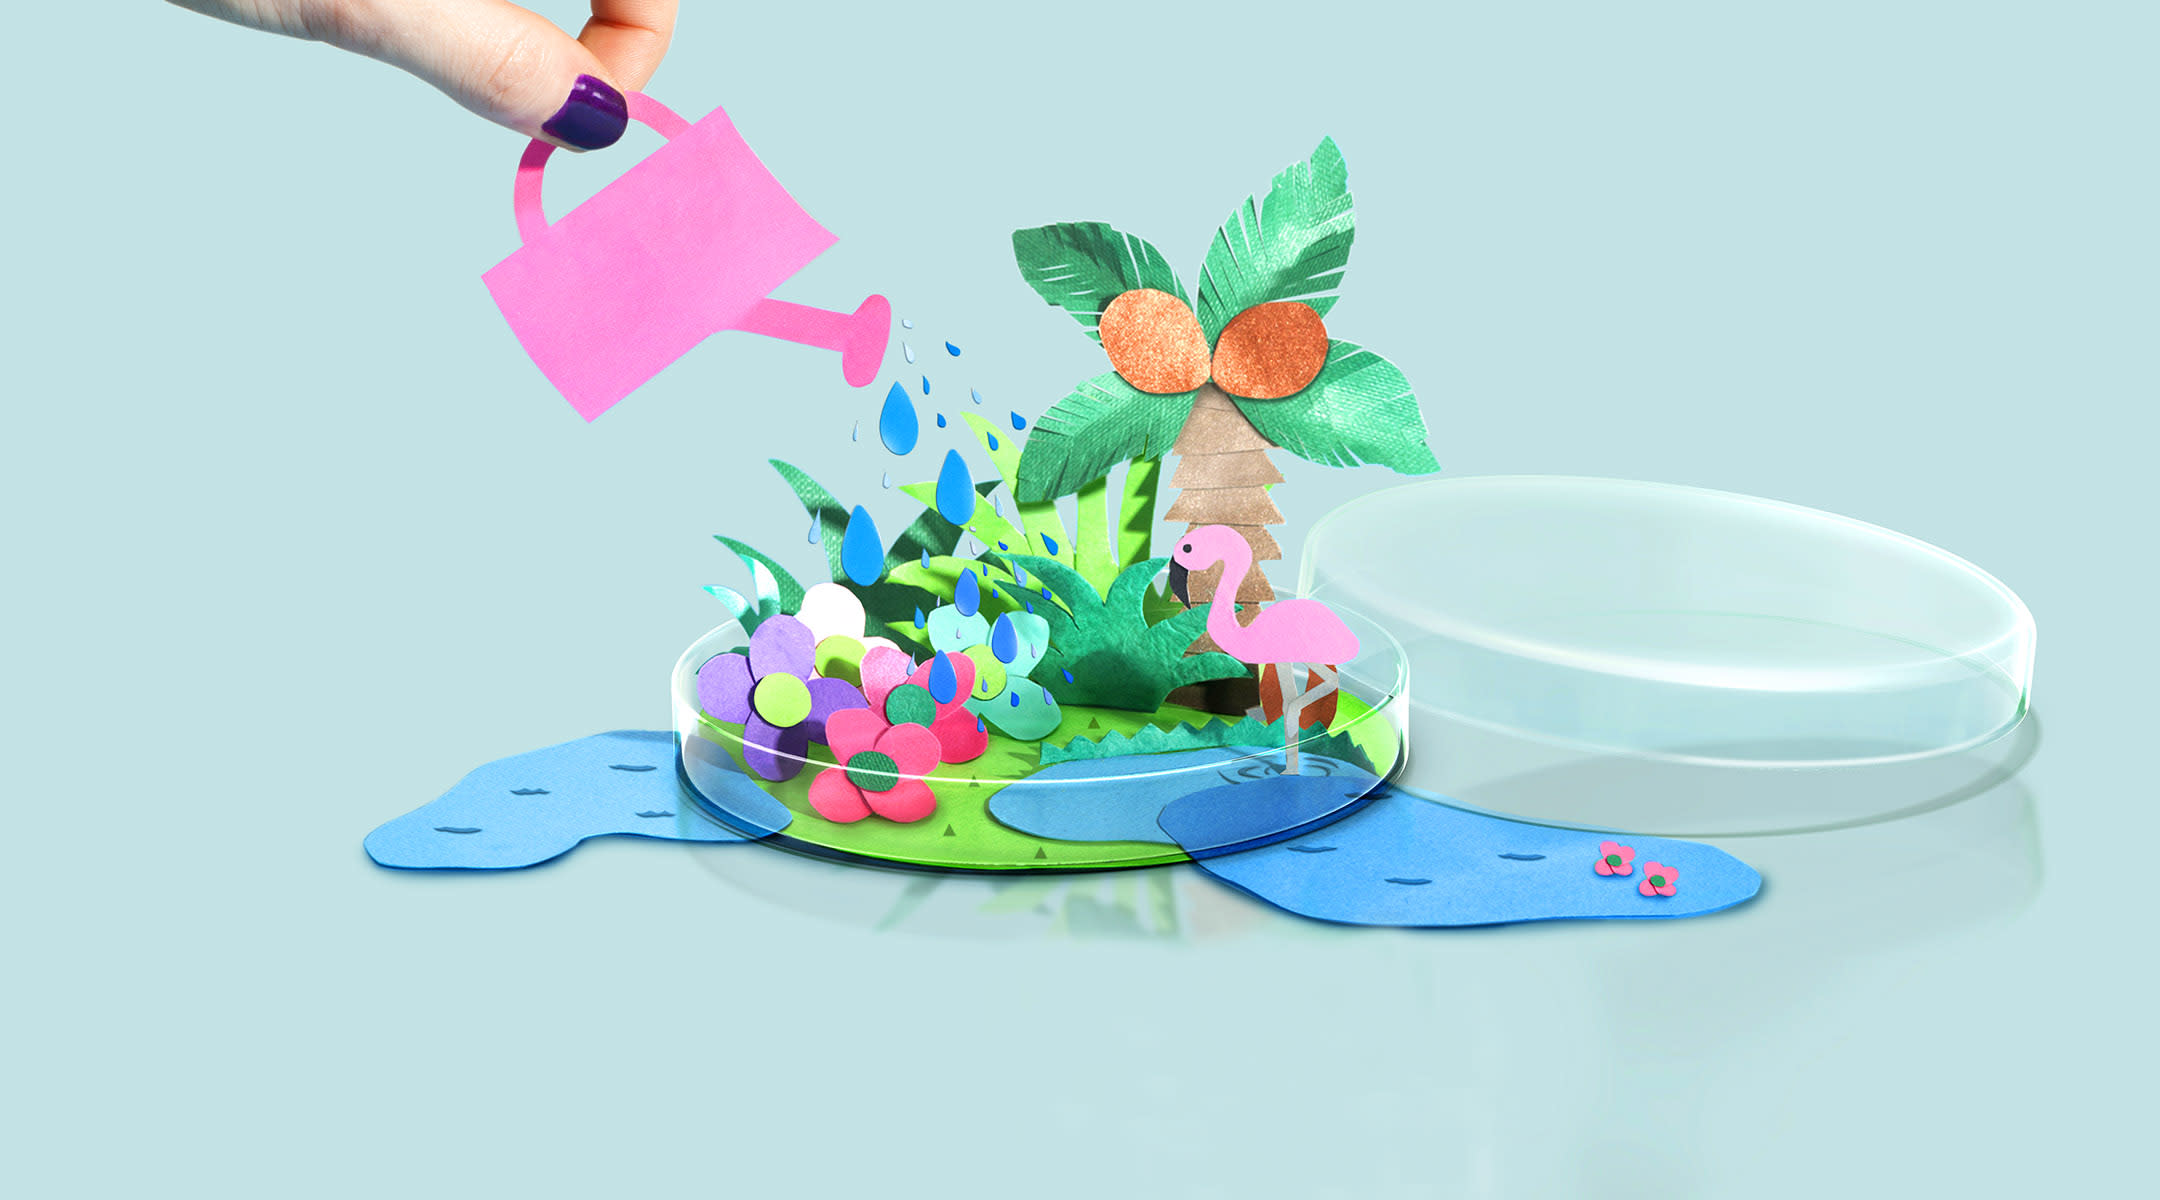 Miniature paper replica of plants and flamingo in petri dish being watered